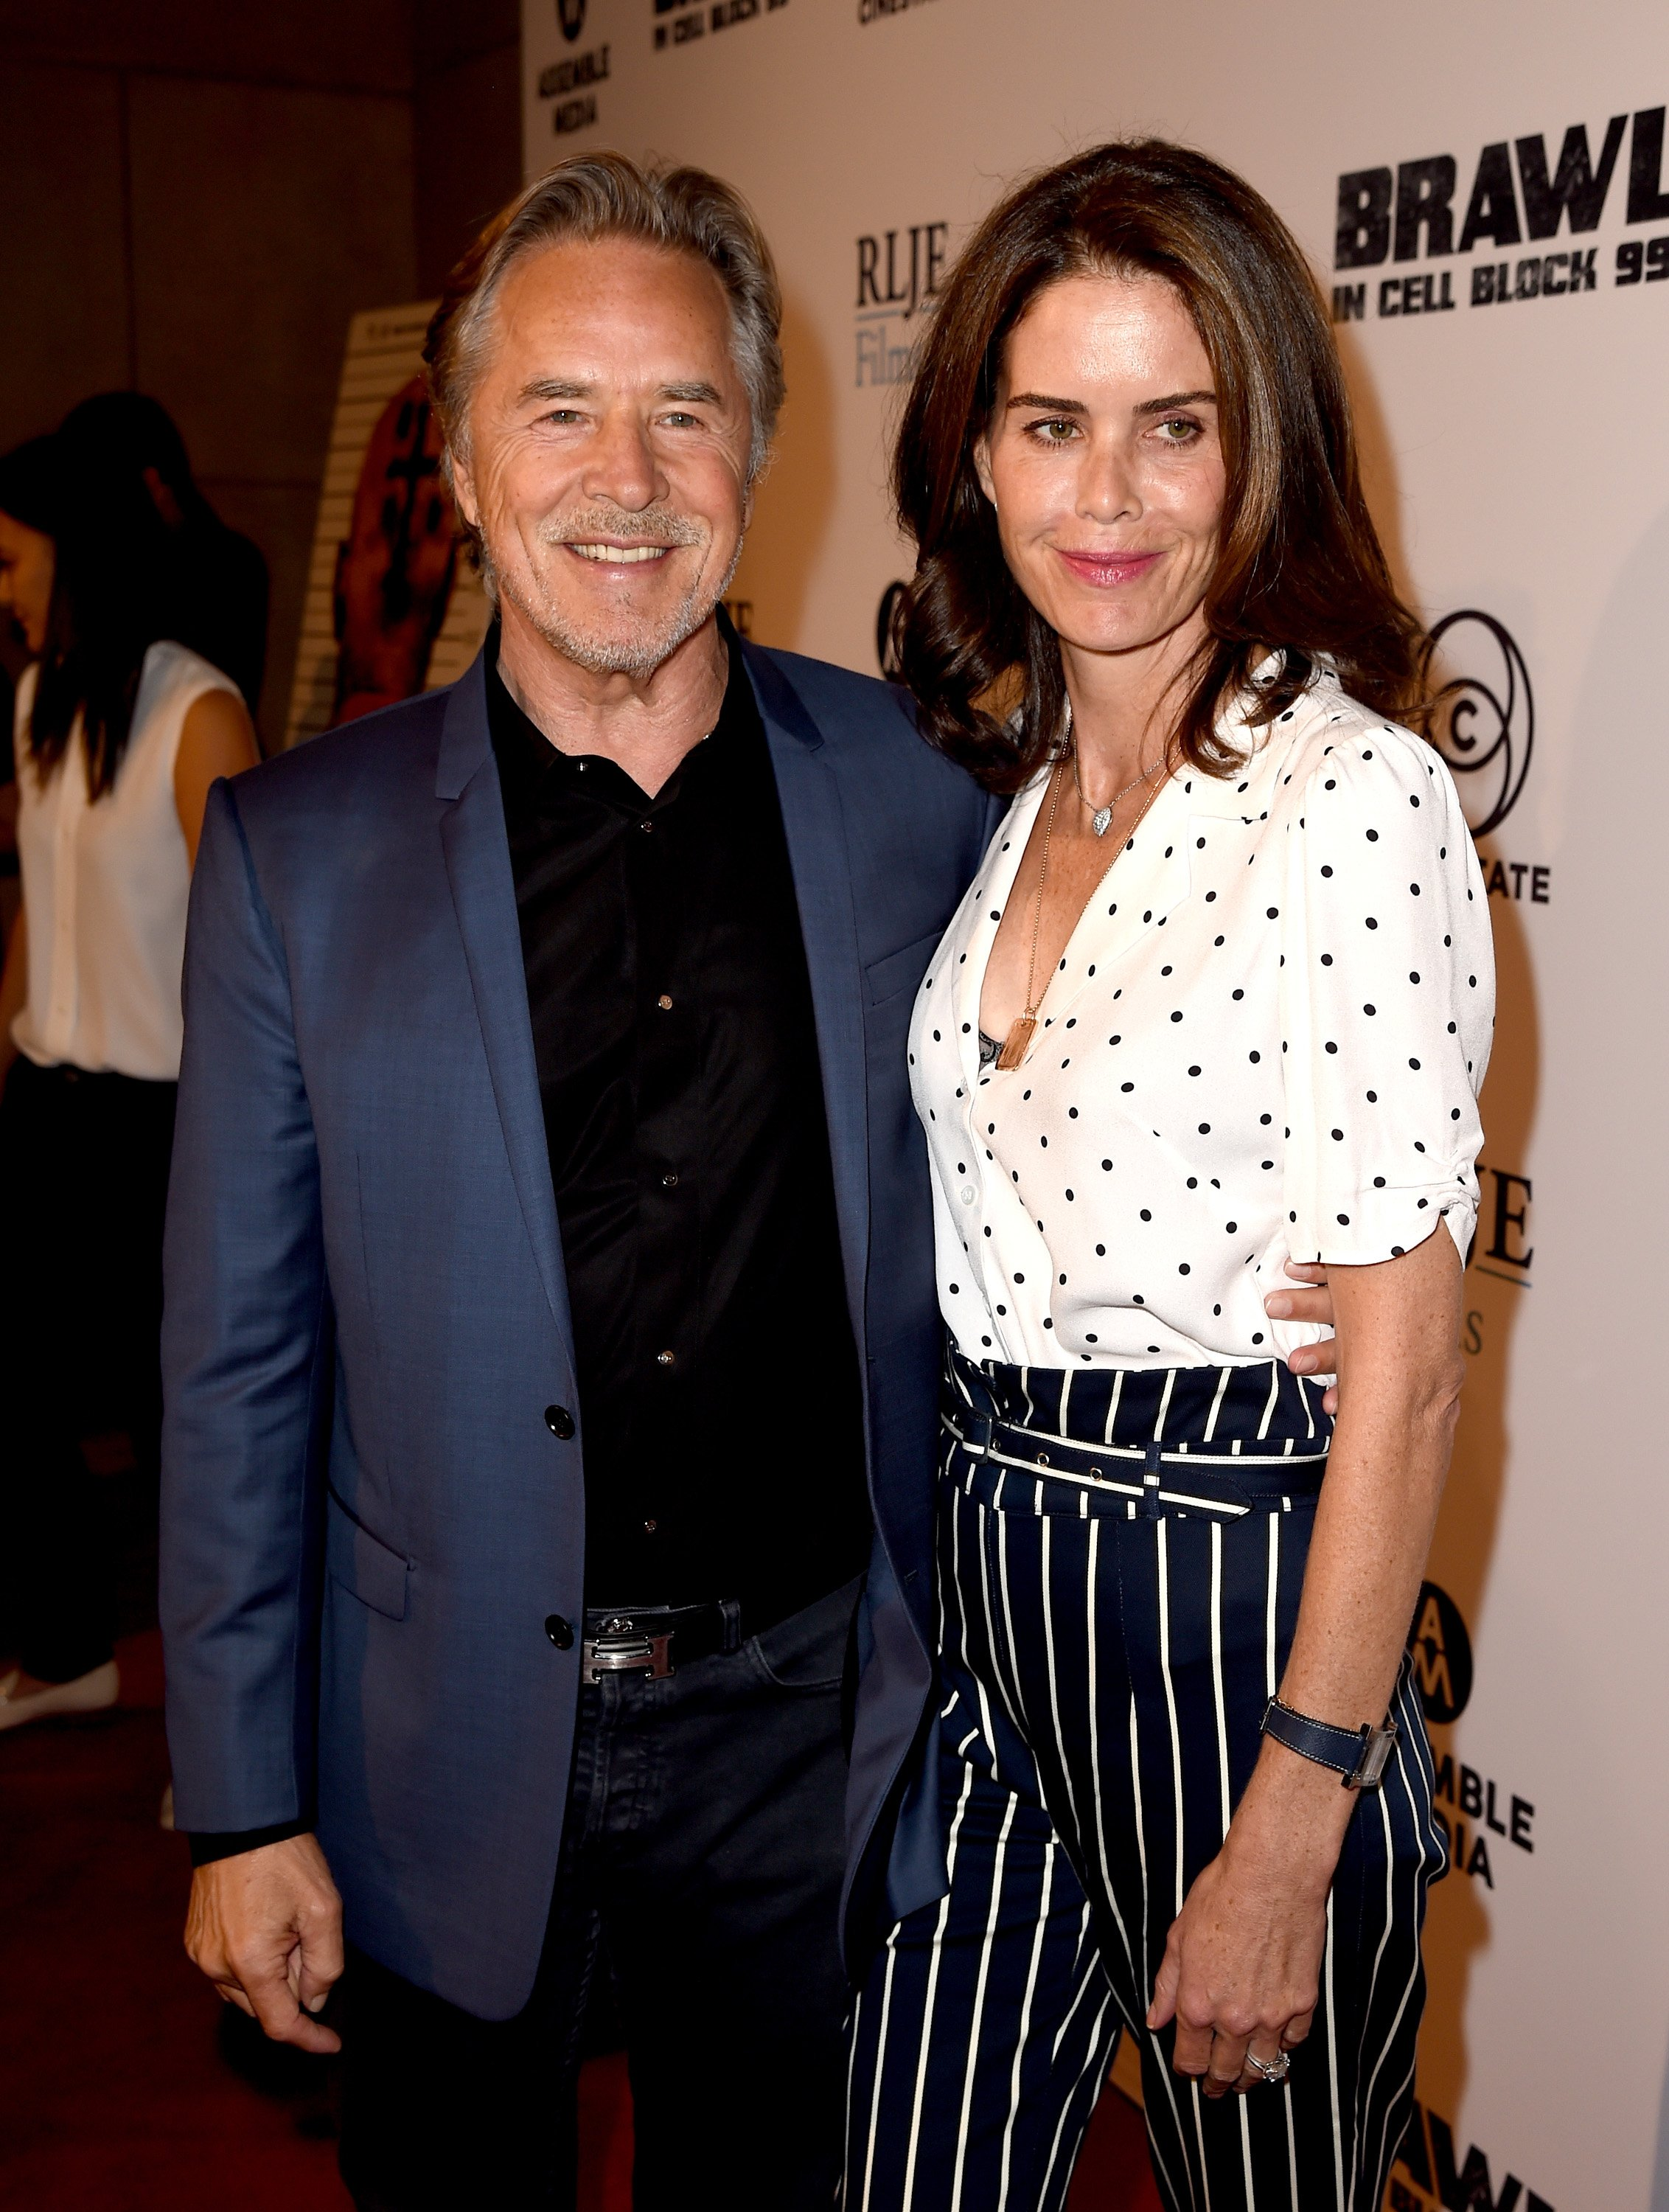 """Don Johnson and wife Kelley Phleger attend the premiere of """"Brawl In Cell Block 99"""" in Los Angeles on September 29, 2017   Photo: Getty Images"""